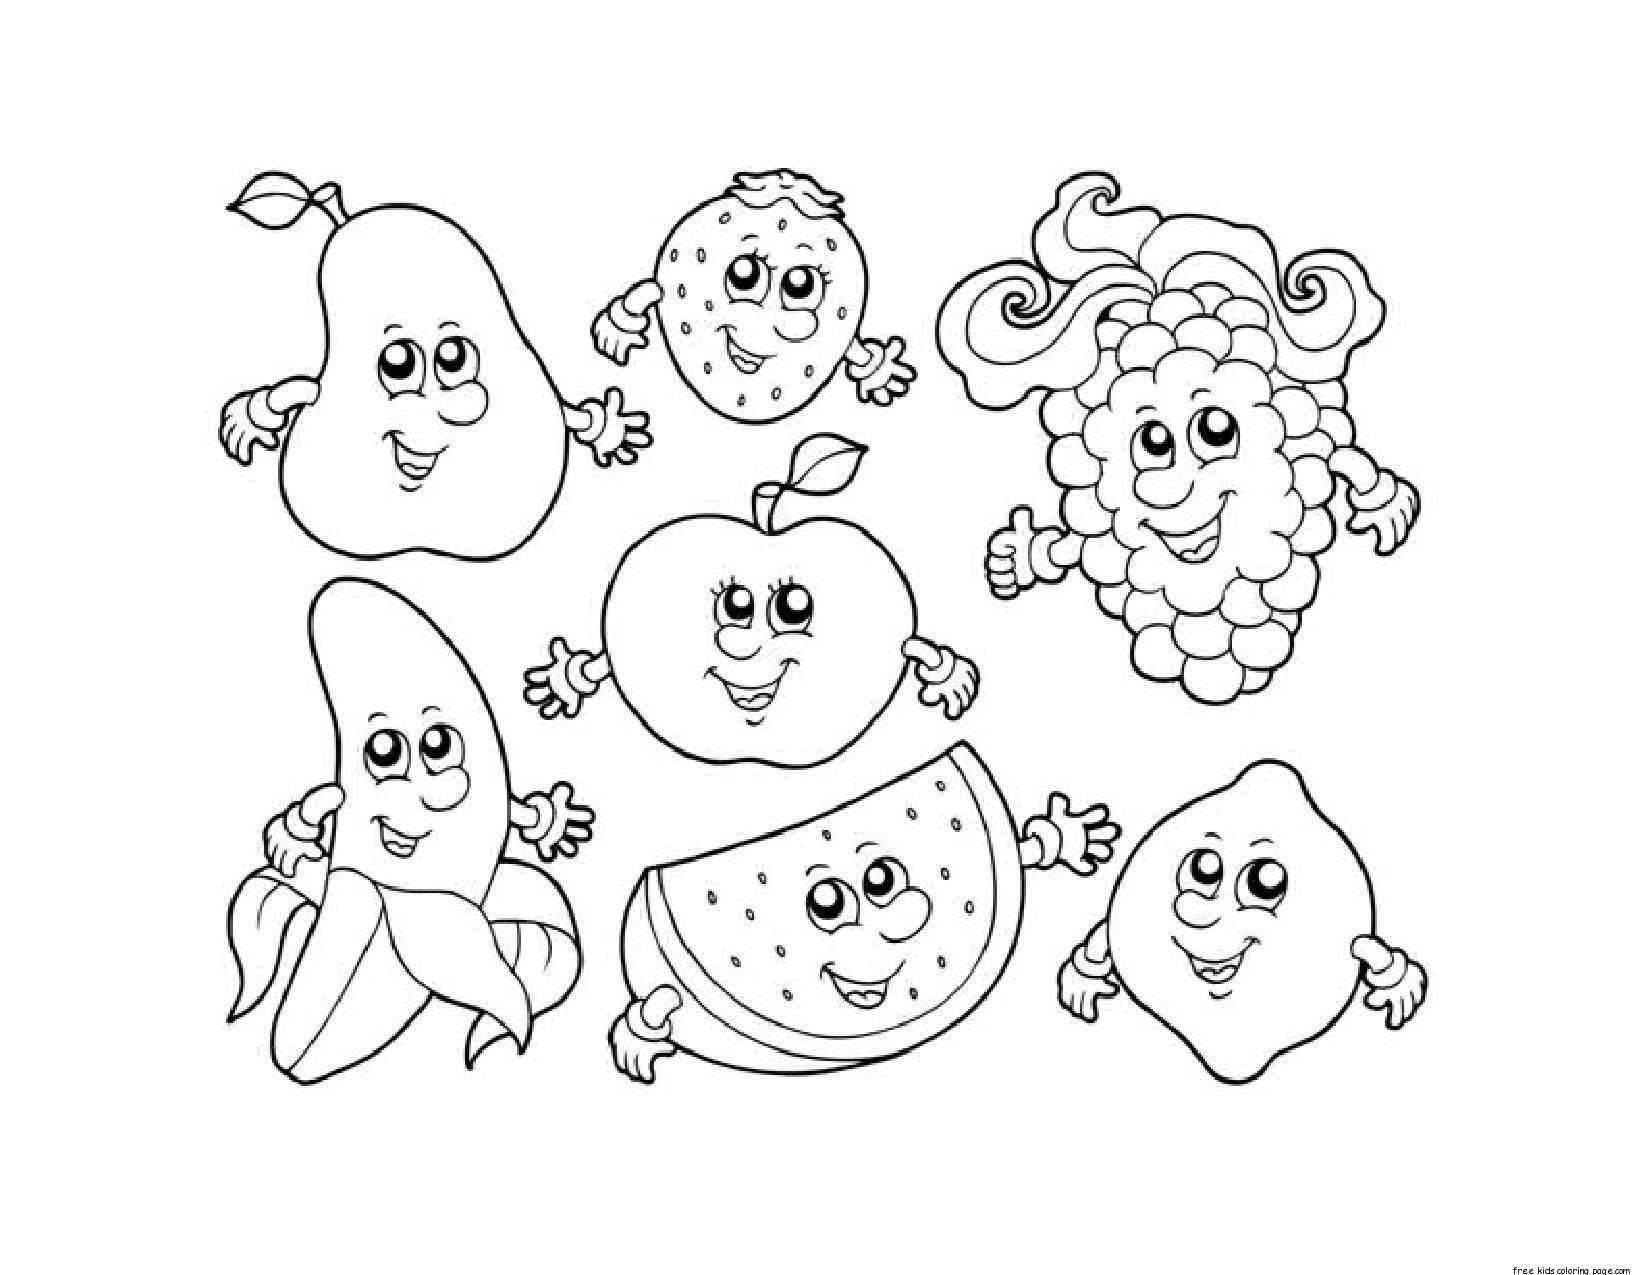 It's just a picture of Unforgettable Coloring Pages Of People With Fruit Background